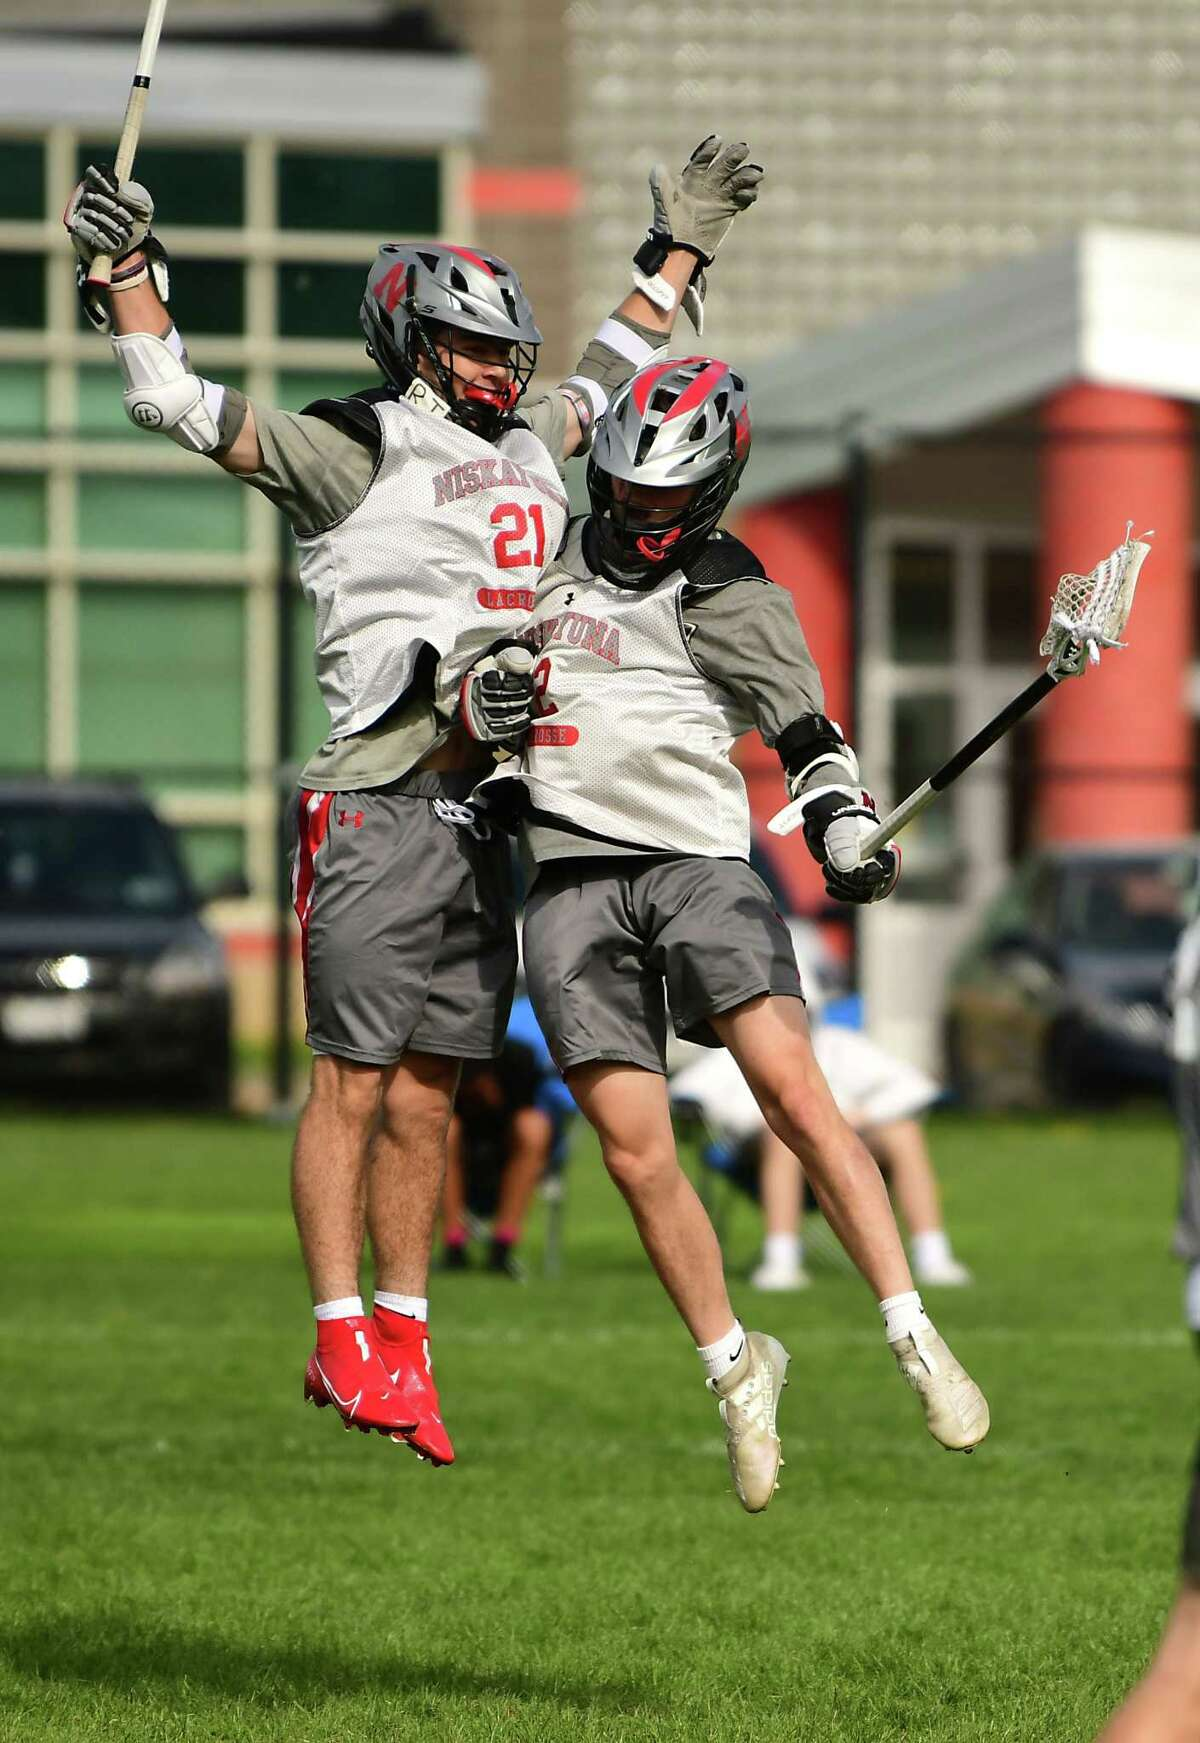 Niskayuna's Brock Behrman, left, celebrates with Cole Nappi after scoring during a lacrosse scrimmage against Shenendehowa on Monday, May 3, 2021 in Niskayuna, N.Y. (Lori Van Buren/Times Union)